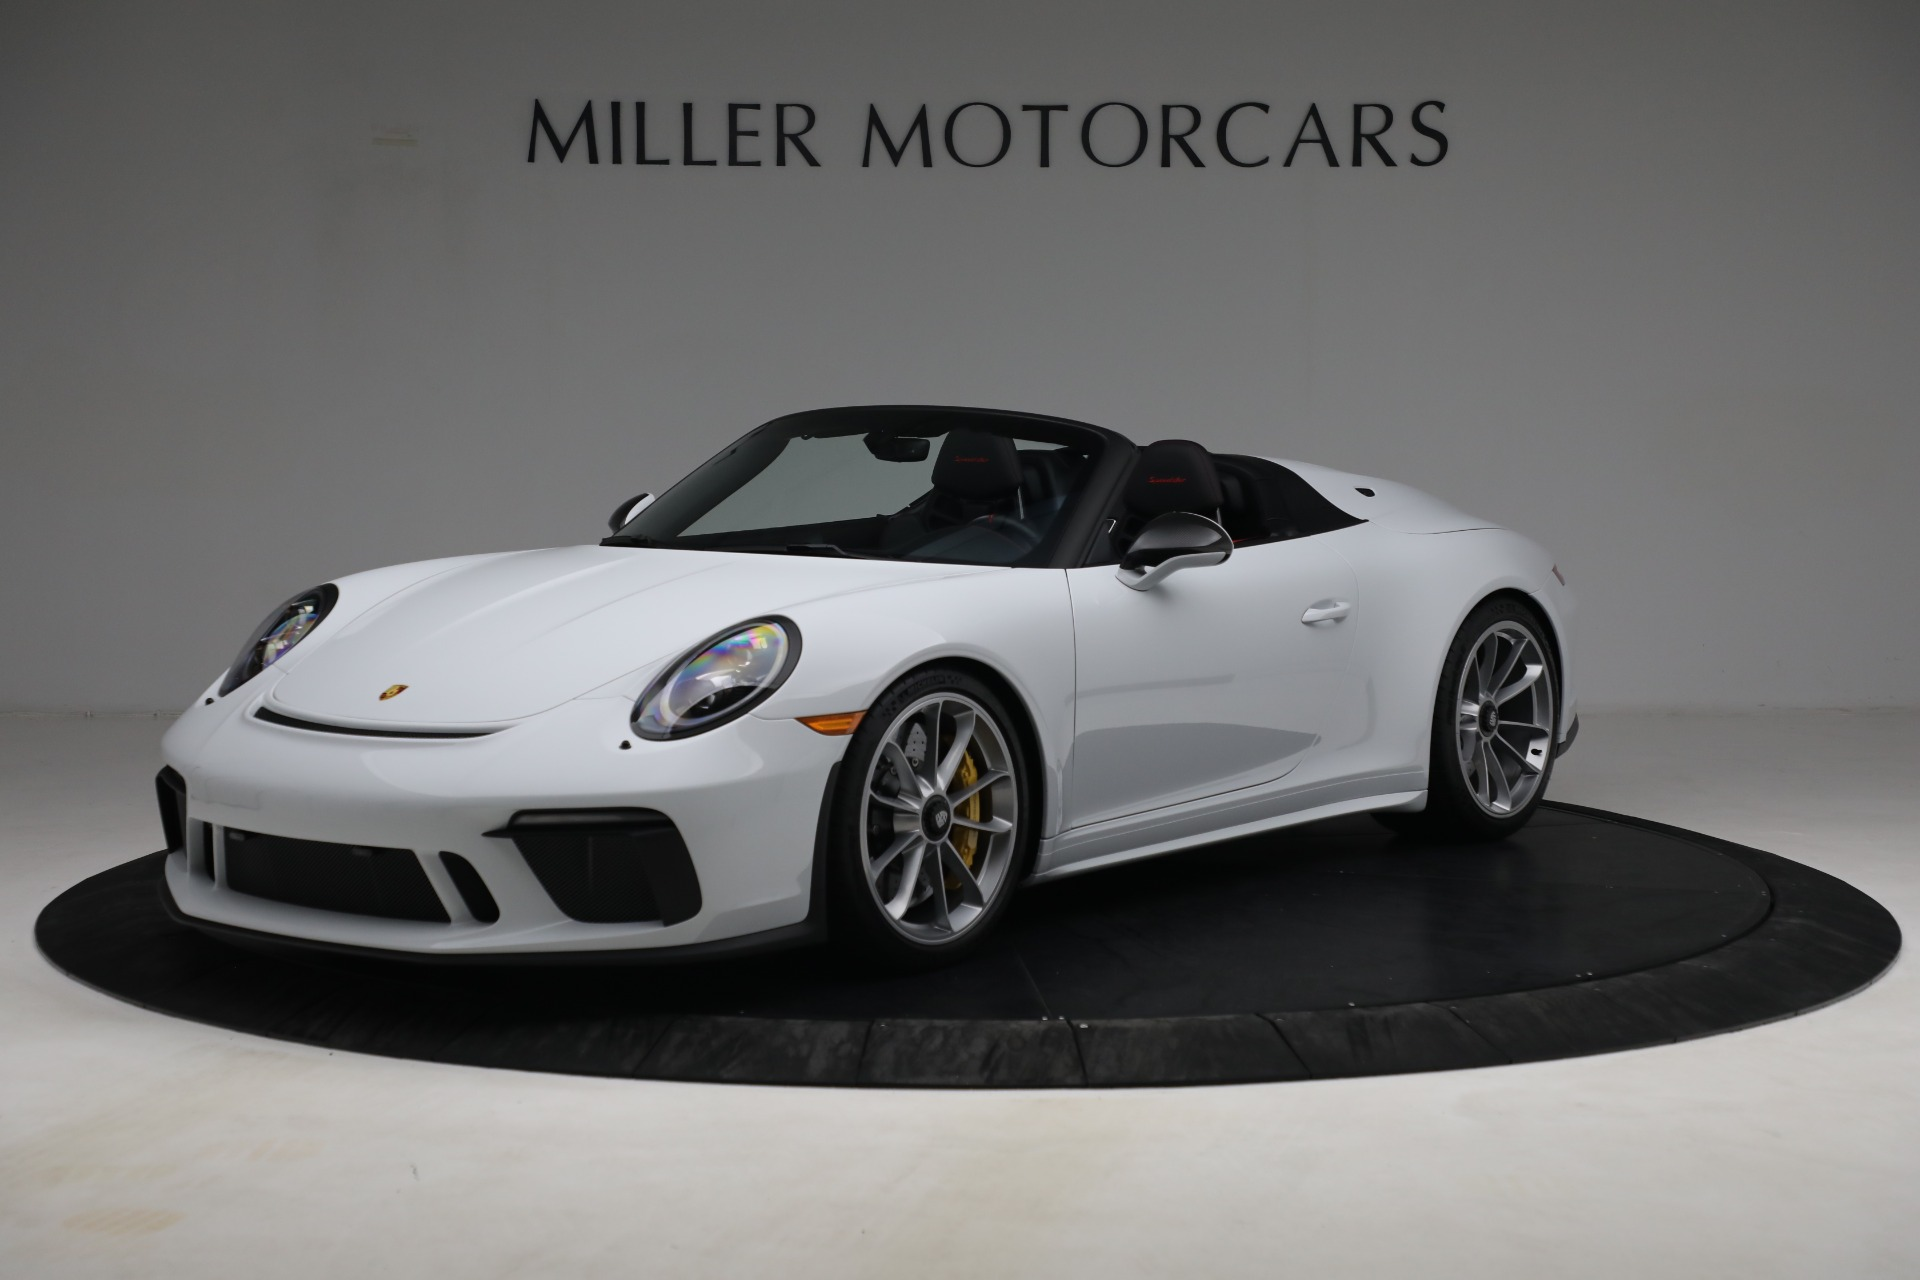 Used 2019 Porsche 911 Speedster for sale $395,900 at Maserati of Greenwich in Greenwich CT 06830 1